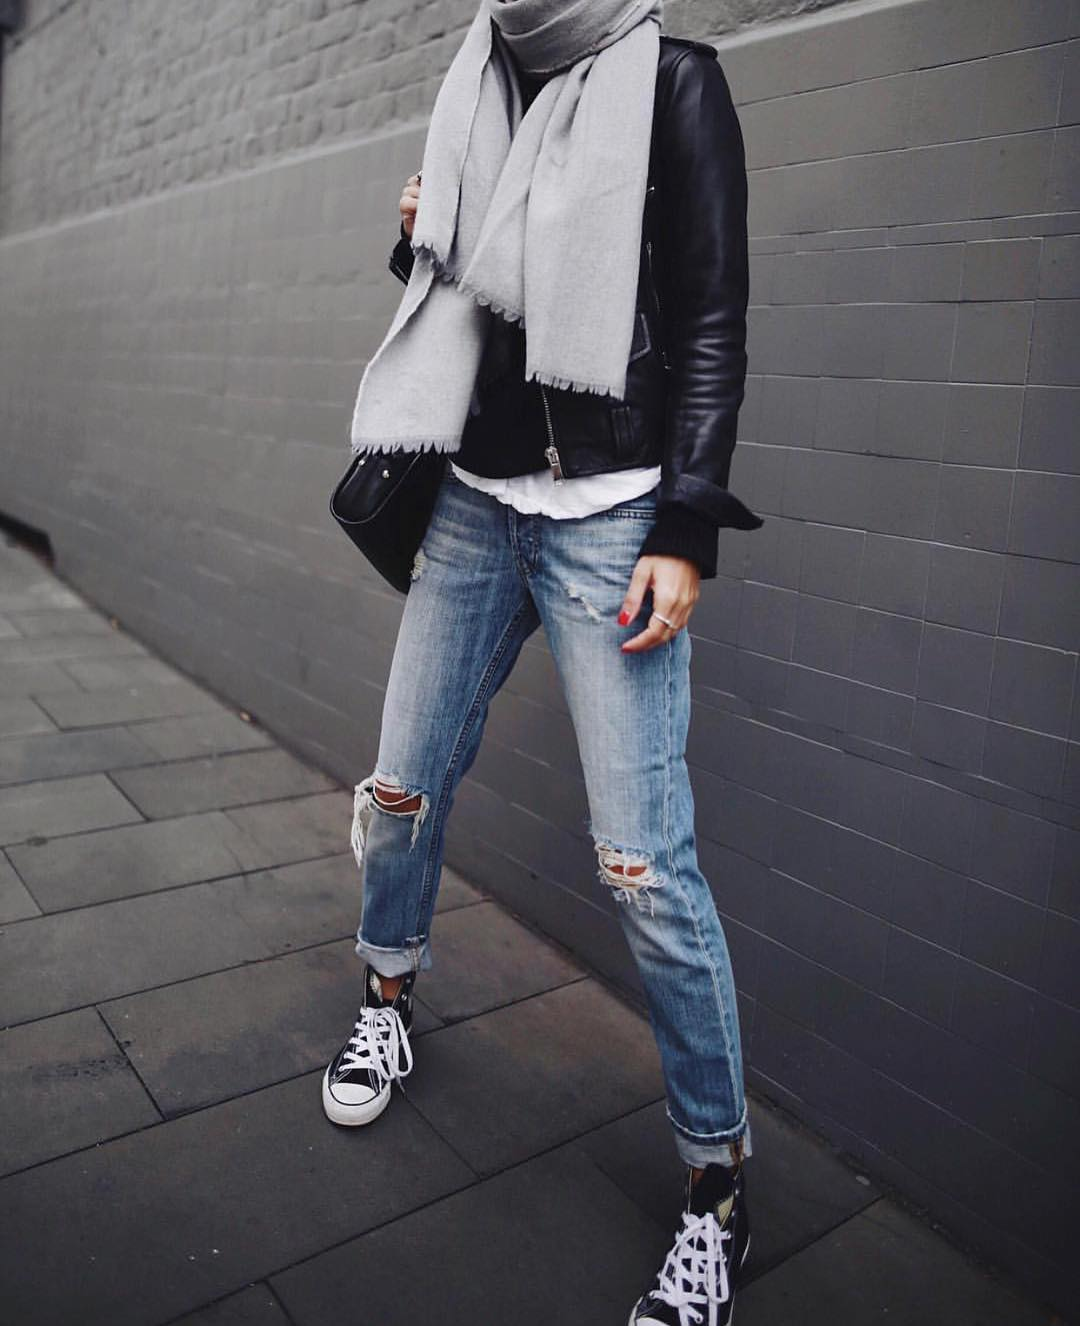 How To Wear Oversized Grey Scarf With Black Leather Jacket And Ripped Slim Jeans 2021